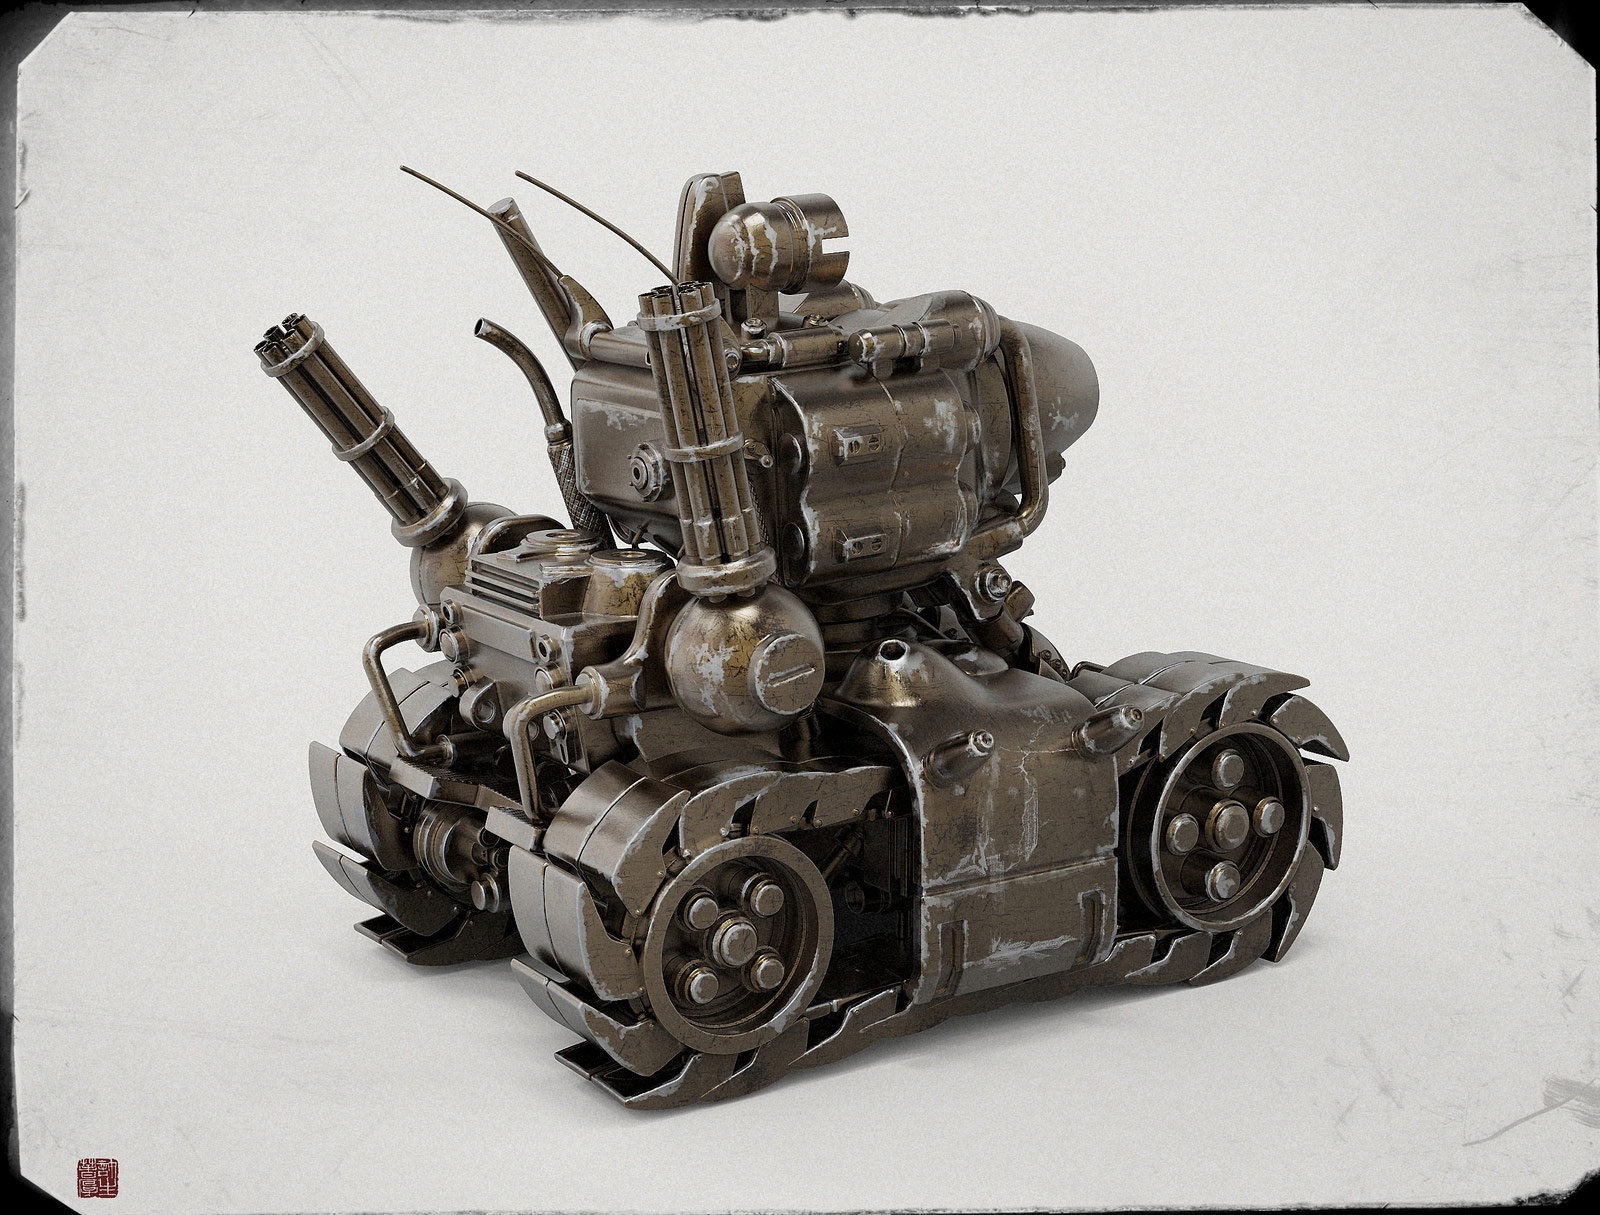 Zhelong xu metal slug2